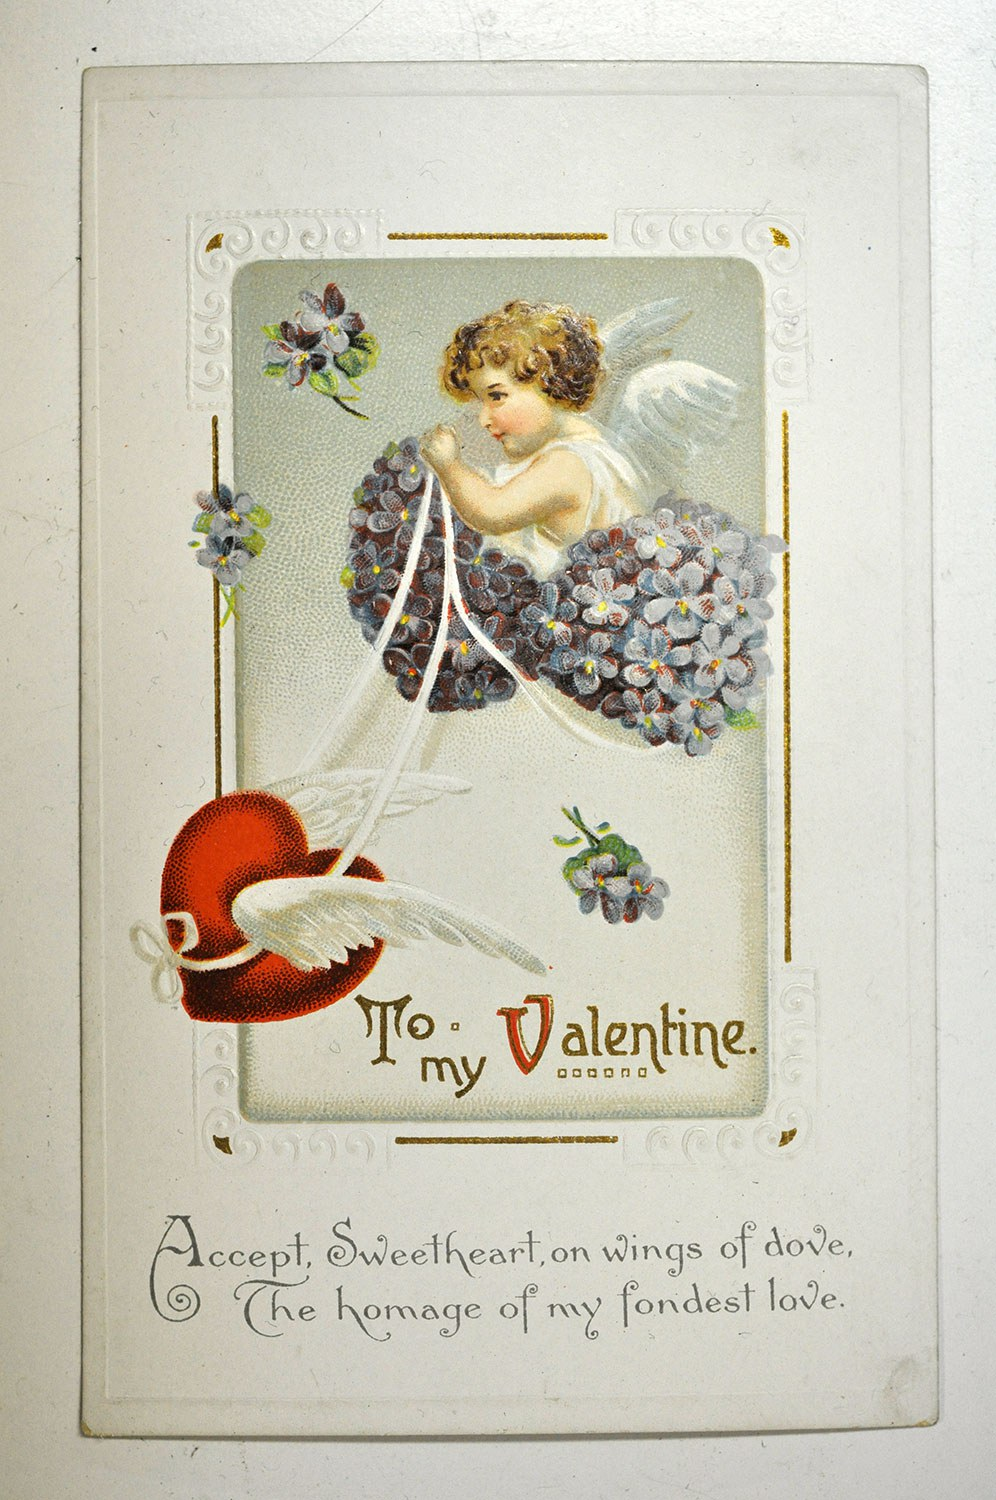 Valentine sent to Dorothy Ashbridge in 1914 from her friend Norma